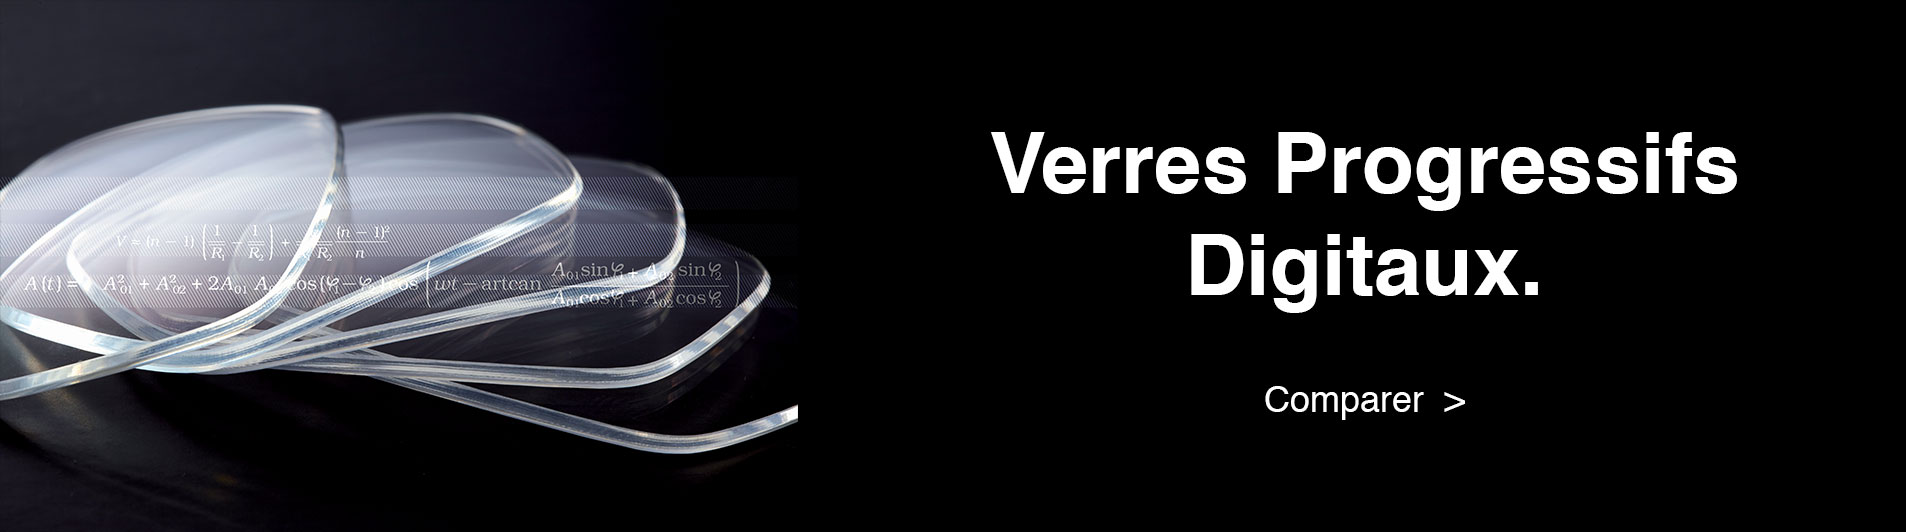 Verres progressifs digitaux Varilux Essilor